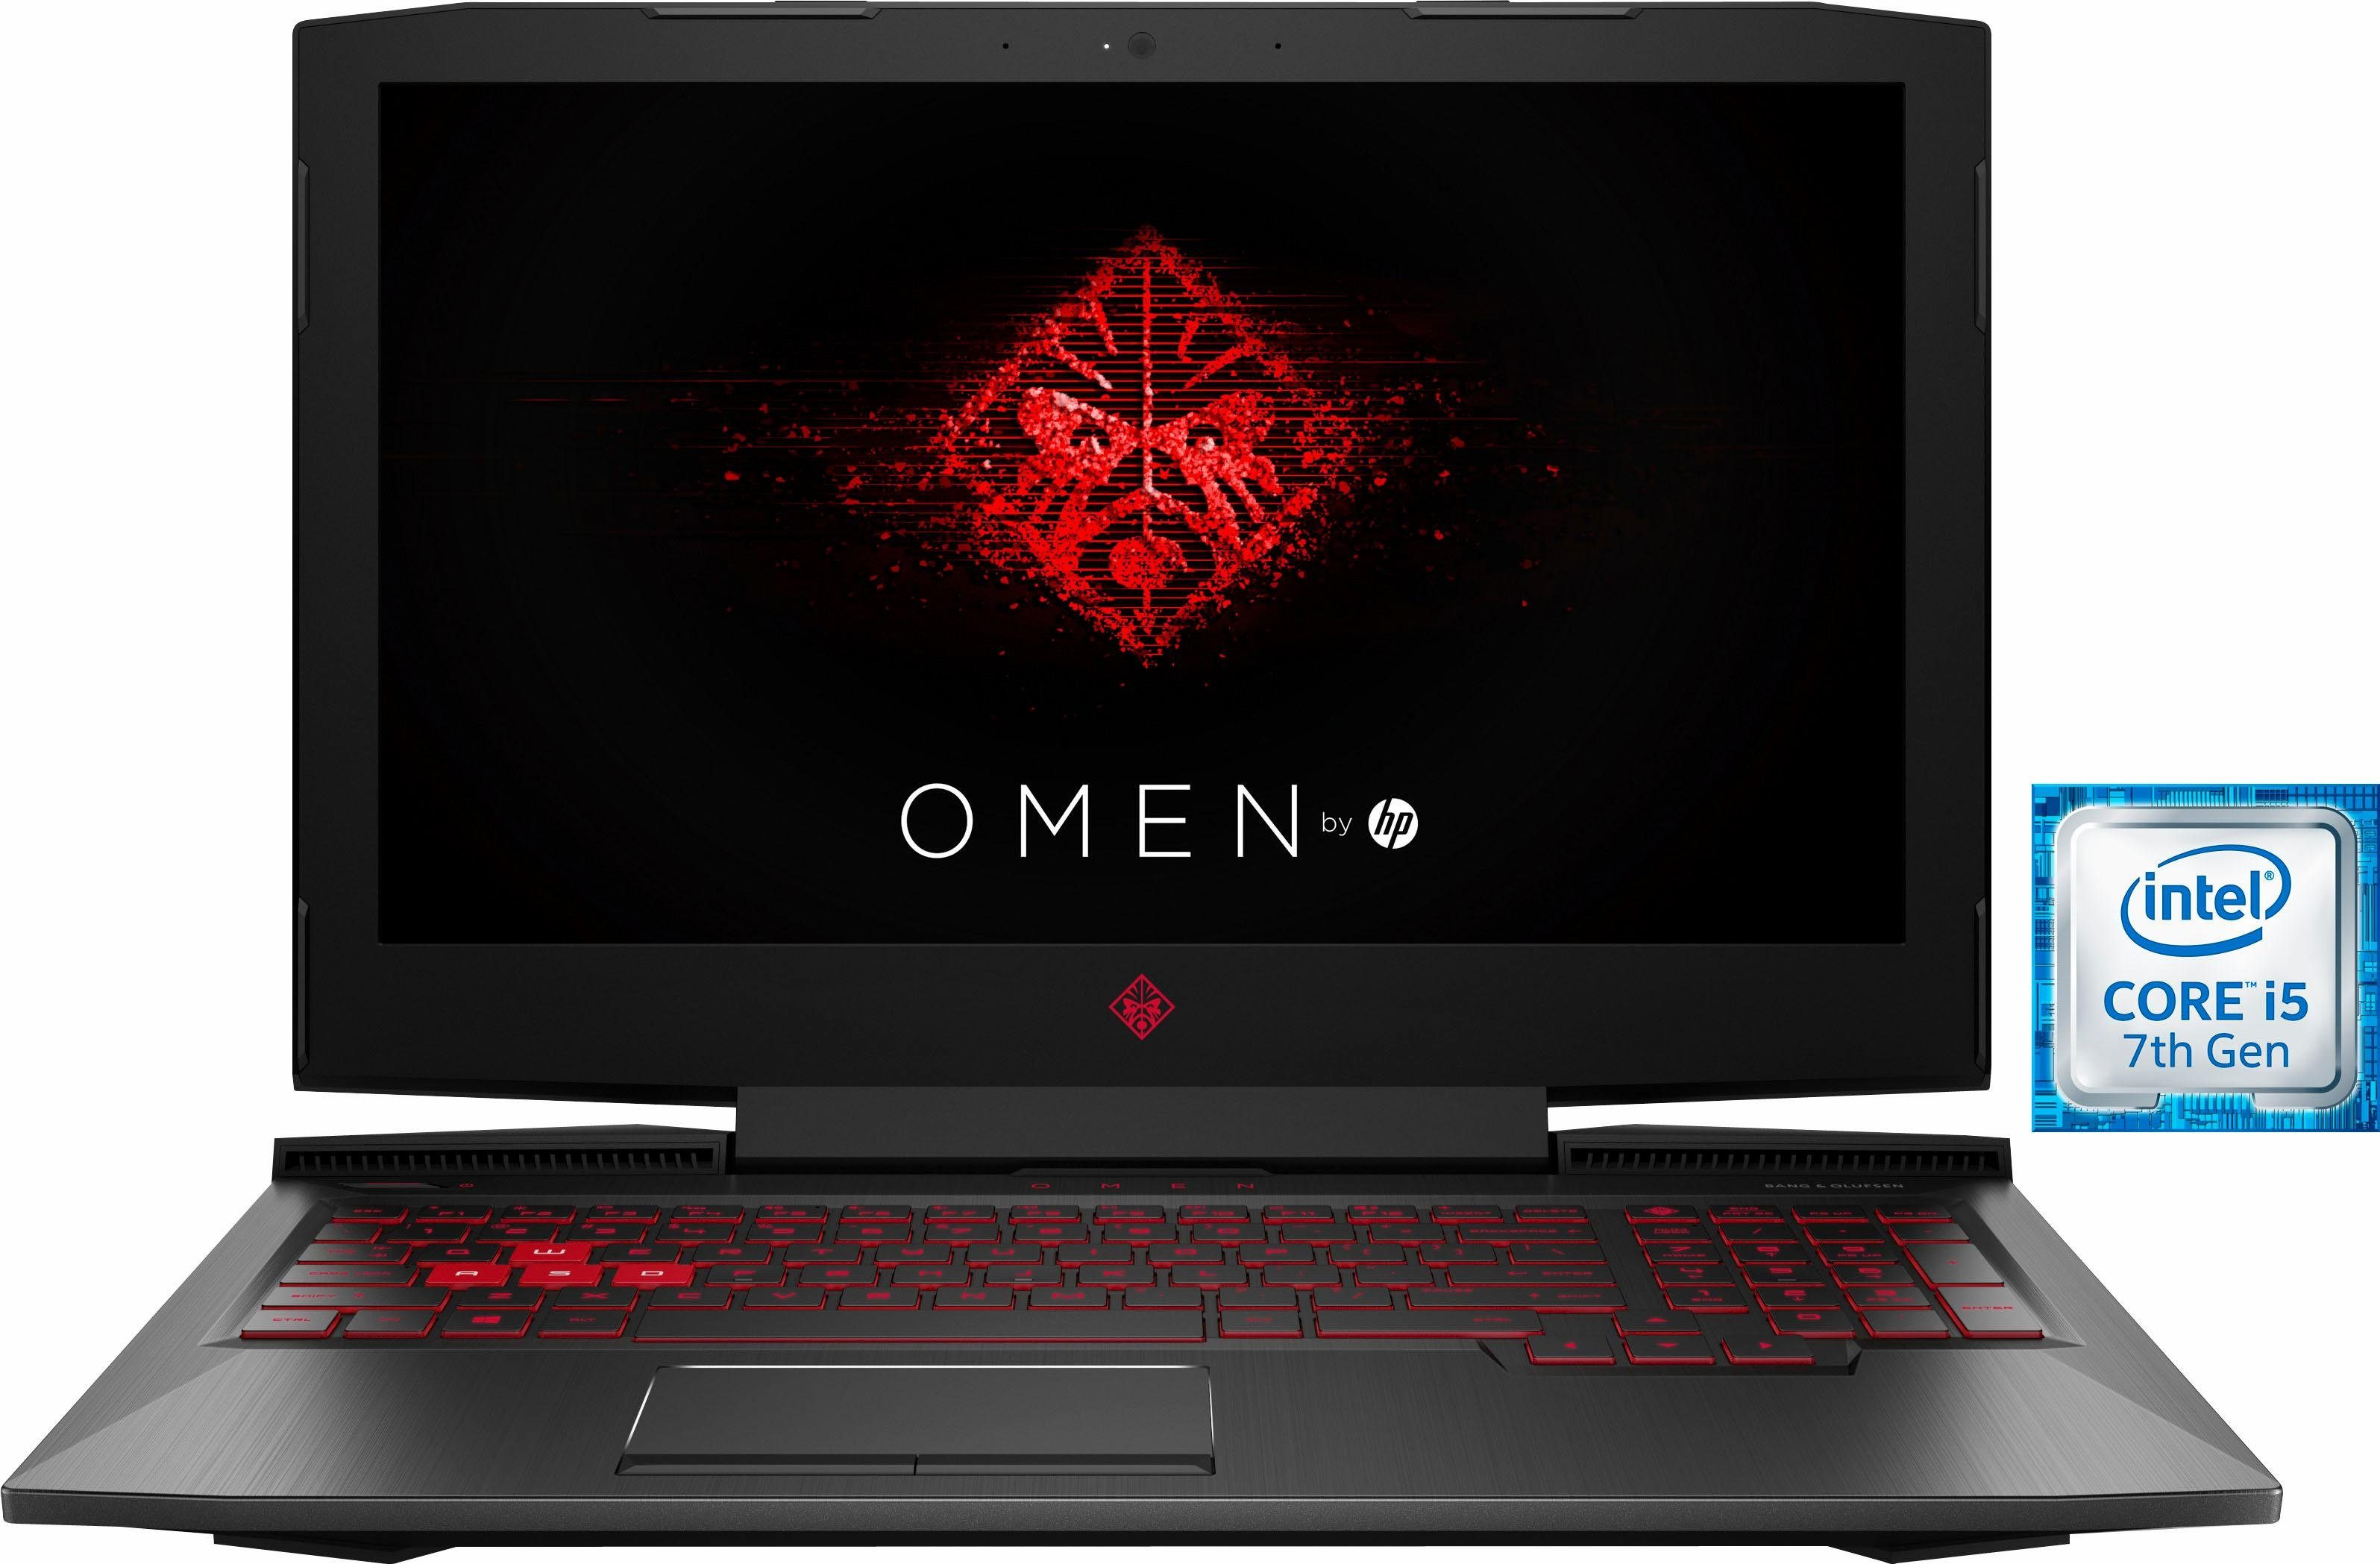 OMEN by HP 15-ce003ng Gaming-Notebook (39,6 cm/15,6 Zoll, Intel Core i5, GeForce, 1000 GB HDD, 128 GB SSD)